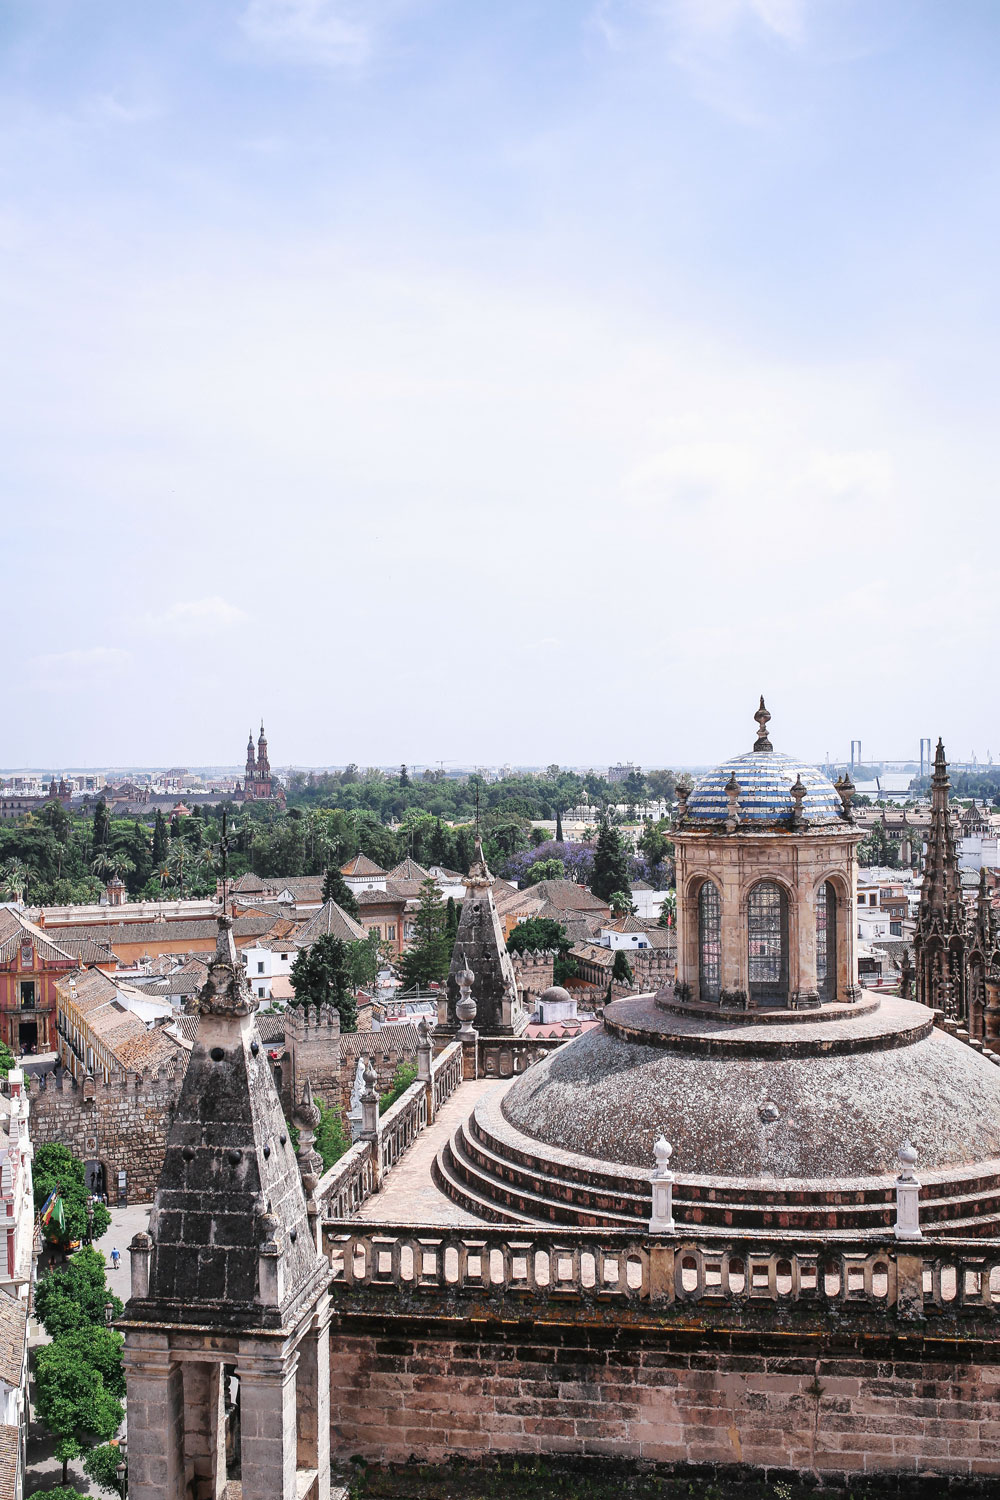 Seville cathedral tour review by To Vogue or Bust